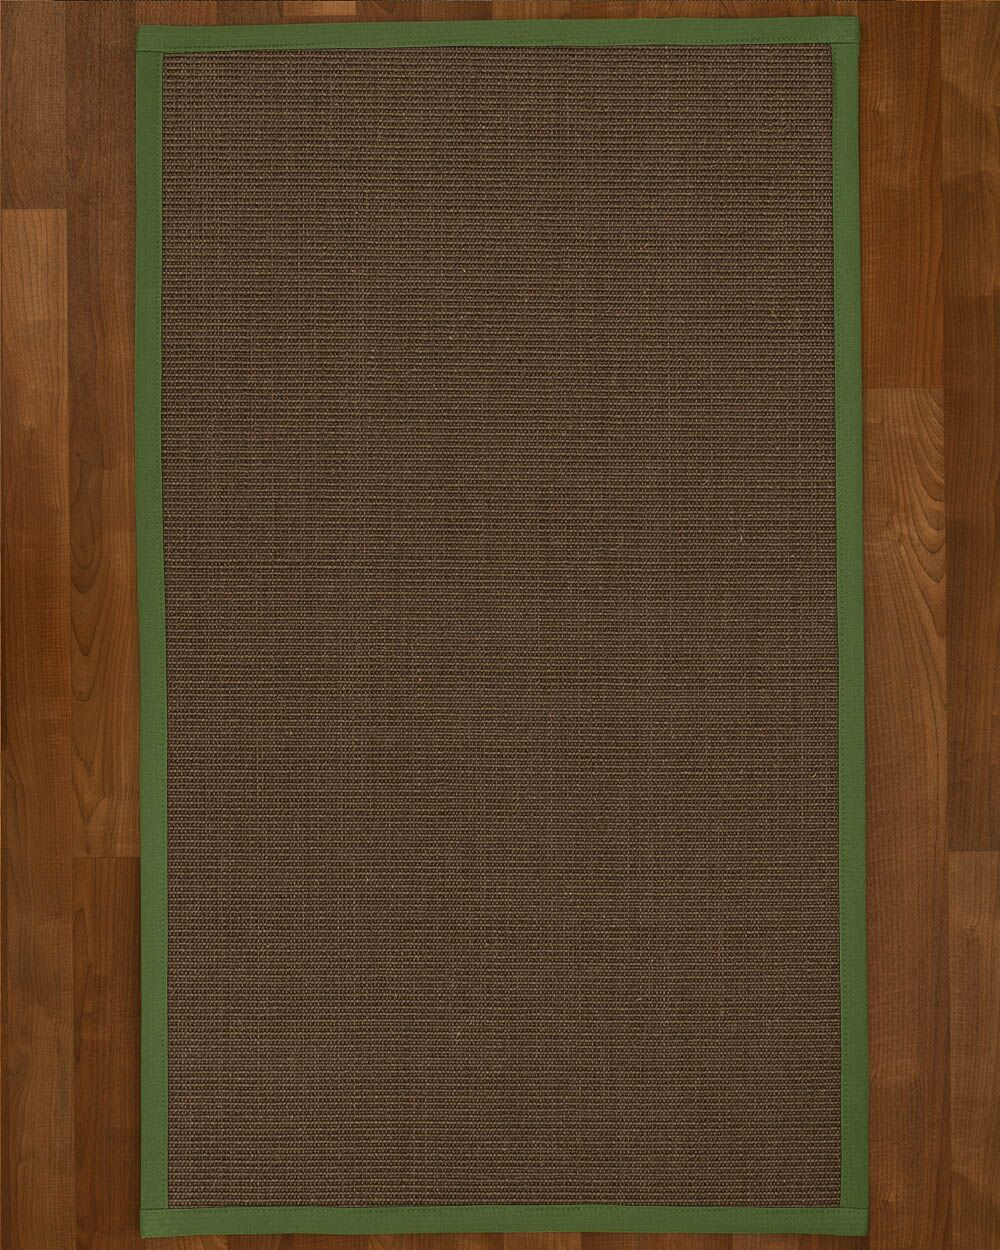 Brokaw Hand Woven Solid Brown Area Rug Rug Size: Rectangle 3' X 5'